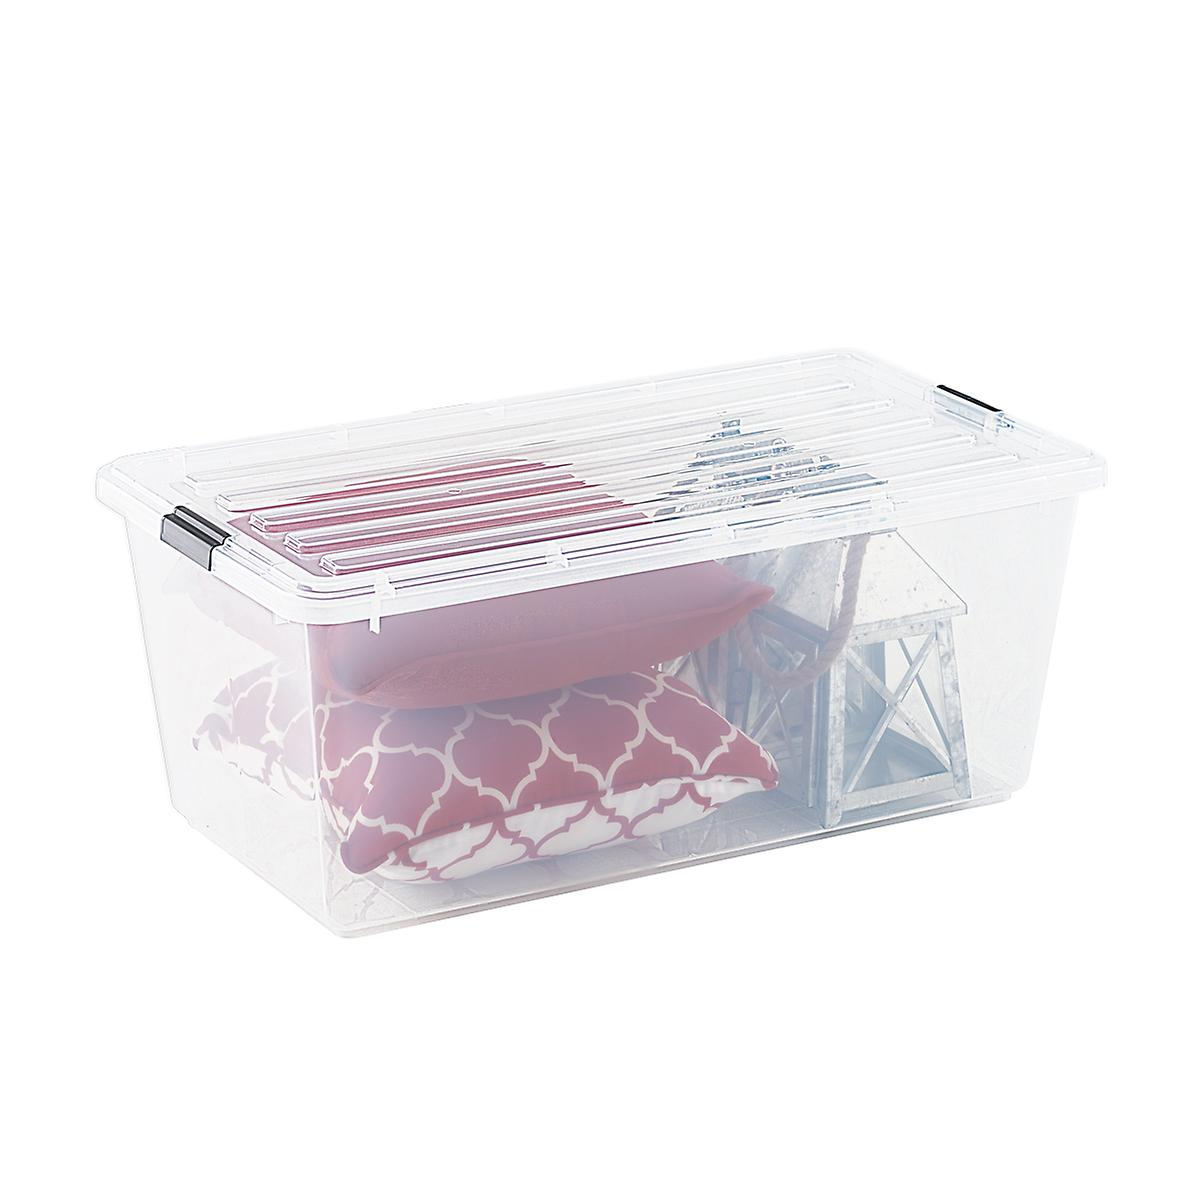 Iris 22.75 gal. Clear Tote with Locking Lid